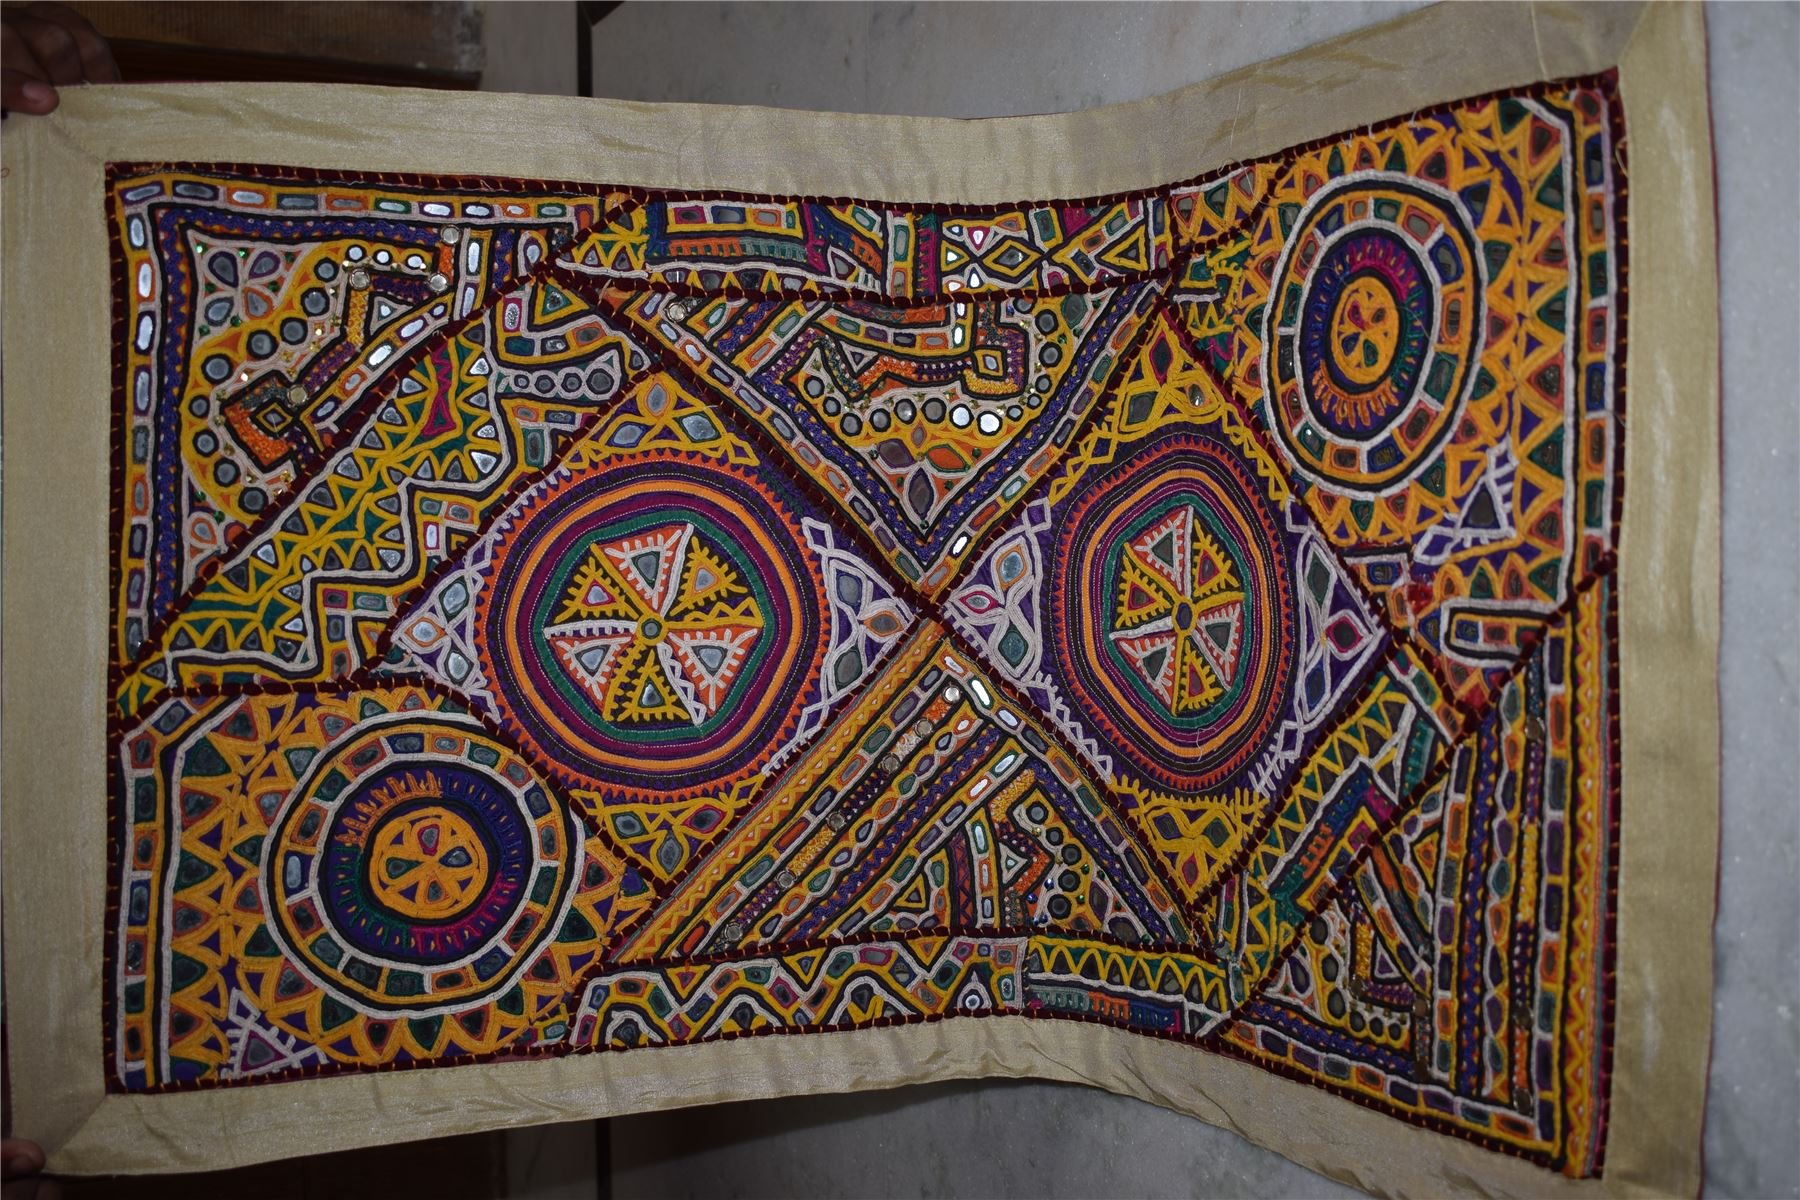 INDIA HANDMADE PATCHWORK WALL HANGING EMBROIDERED VINTAGE TAPESTRY90